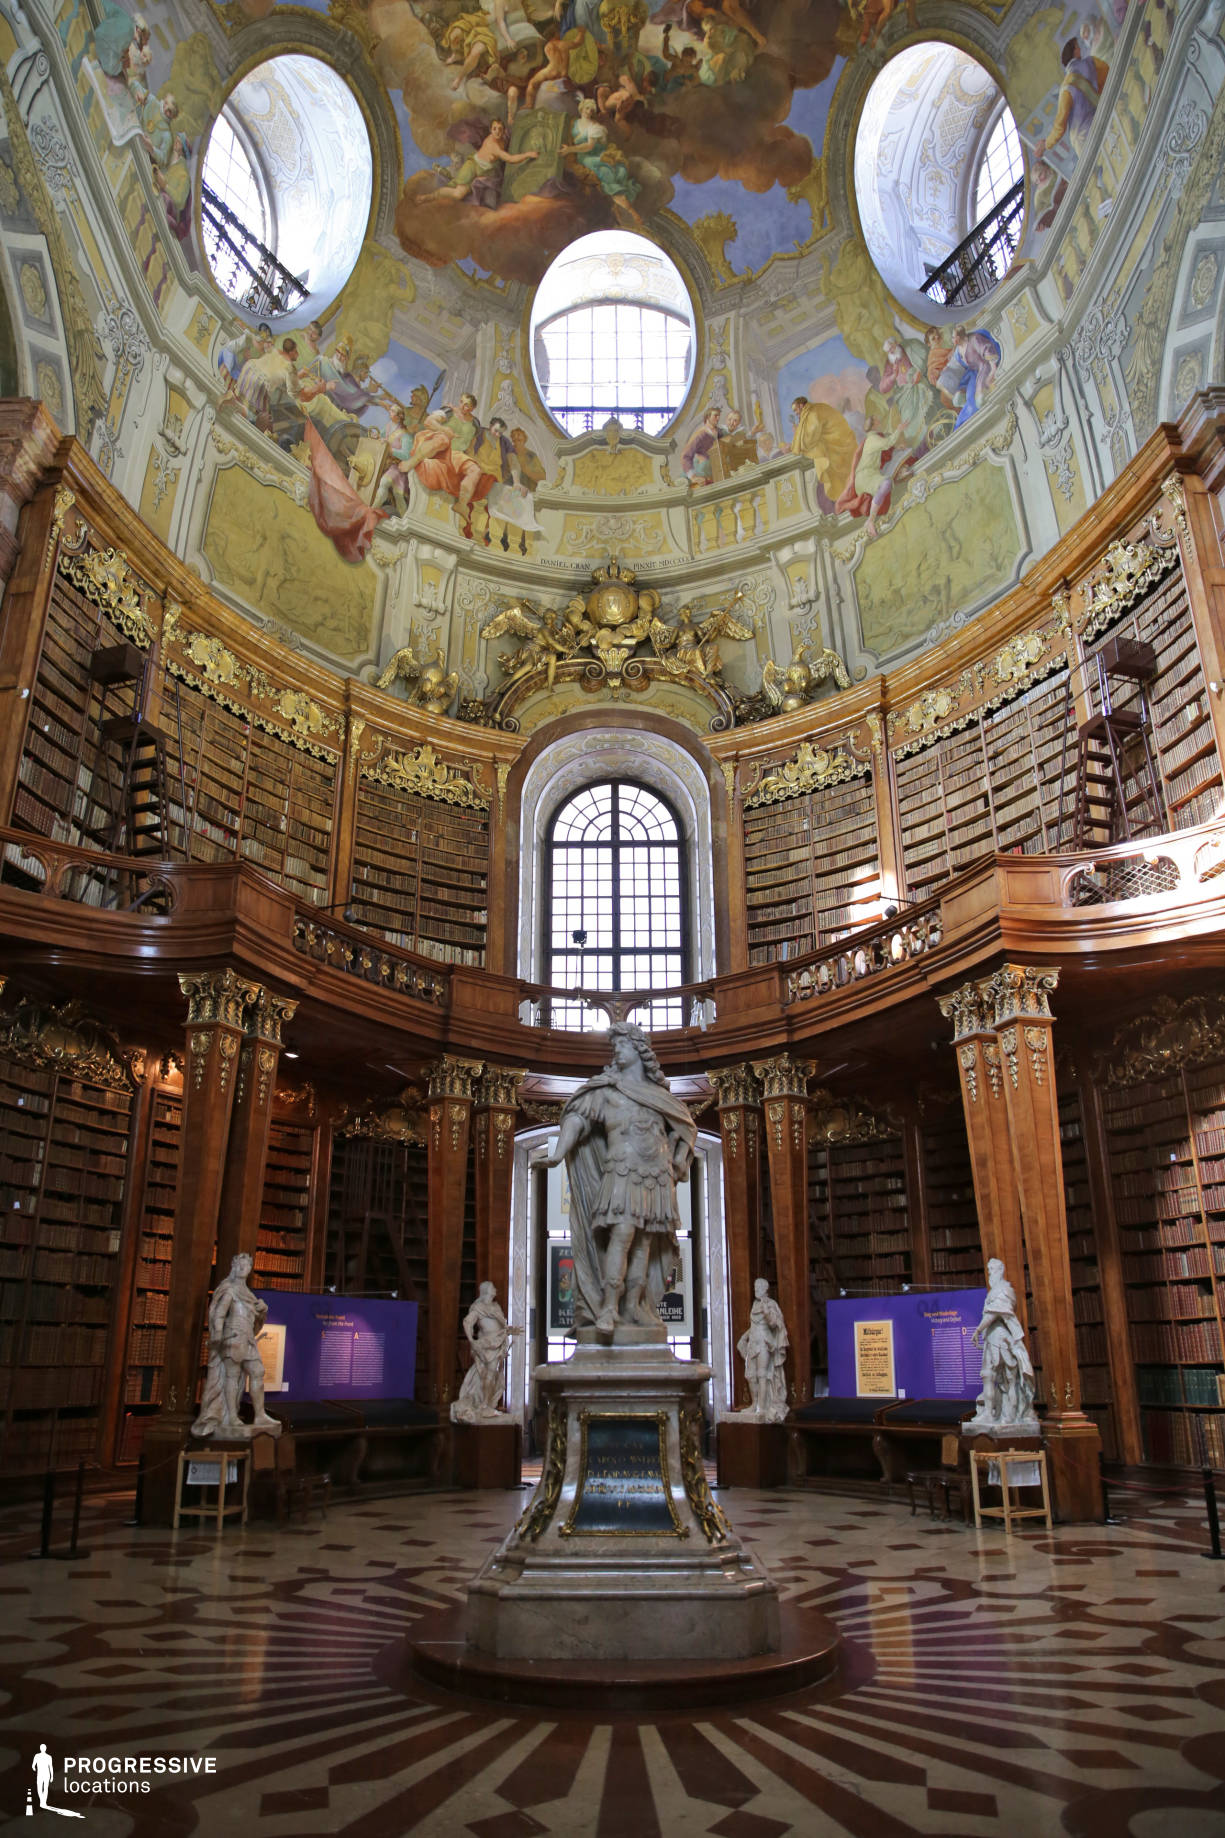 Locations in Austria: Great Reading Hall %26 Statue, National Library